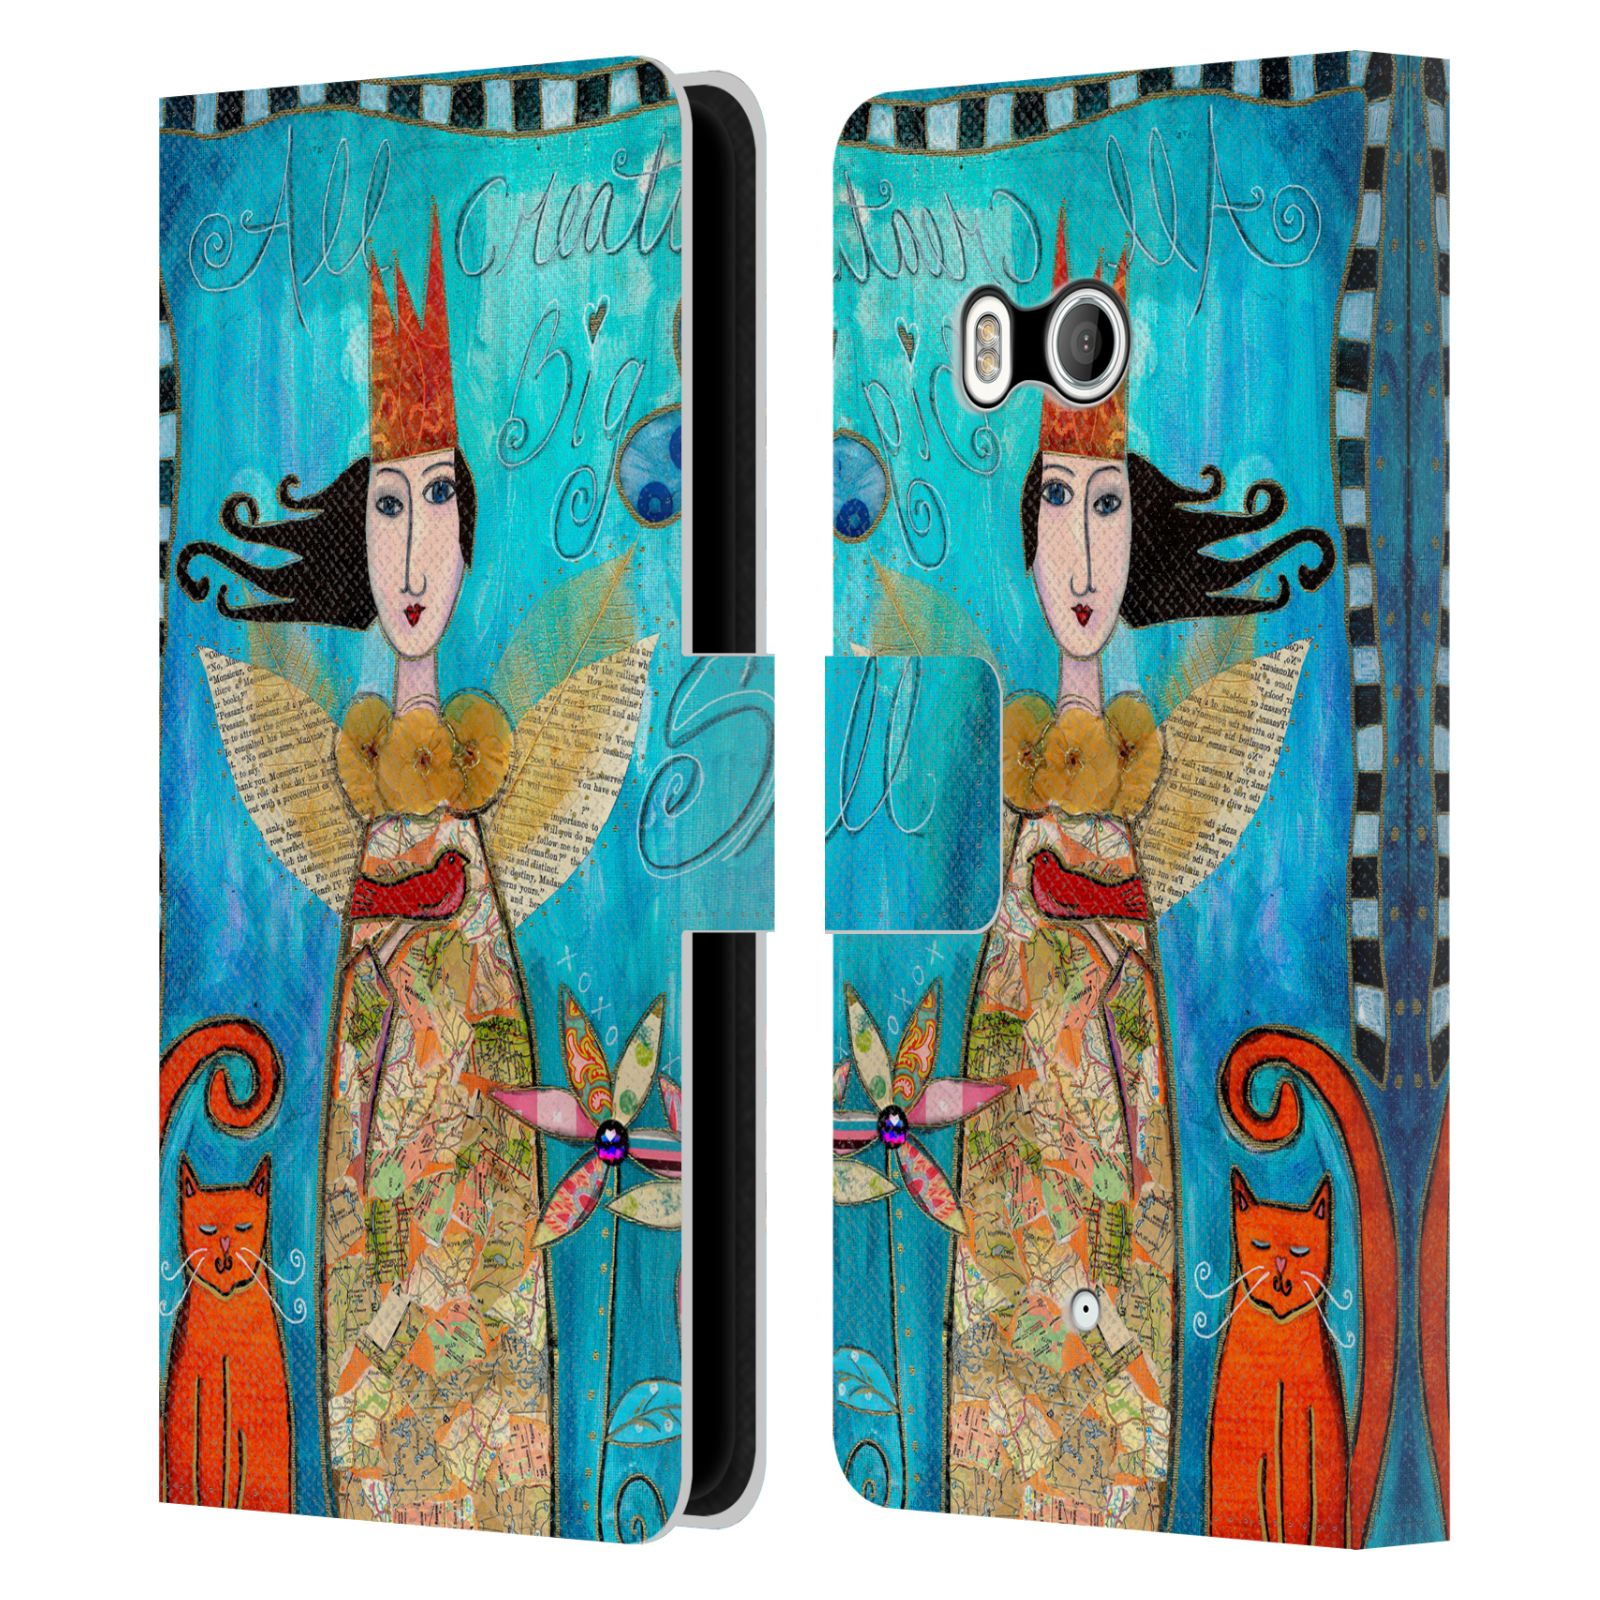 OFFICIAL-WYANNE-PEOPLE-AND-FACES-LEATHER-BOOK-WALLET-CASE-FOR-HTC-PHONES-1